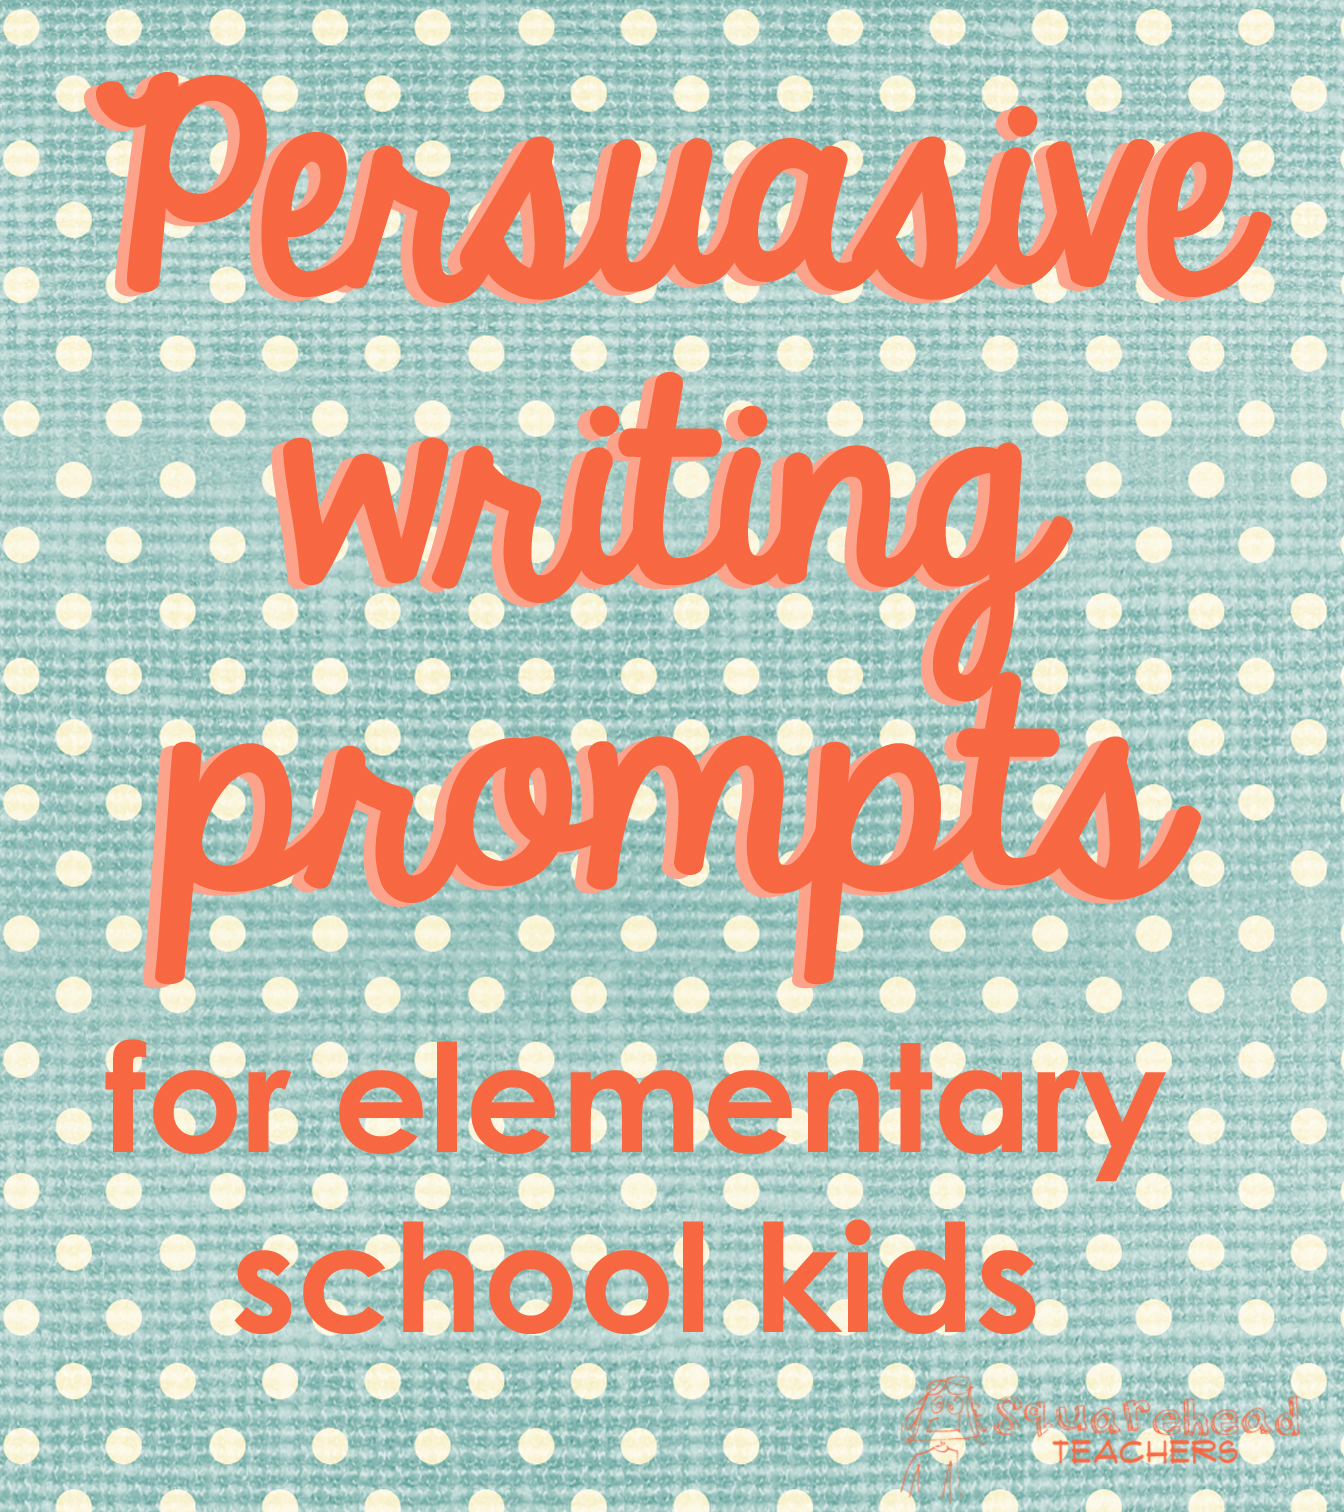 custom writing prompts essay writing for elementary students mototsiklist com